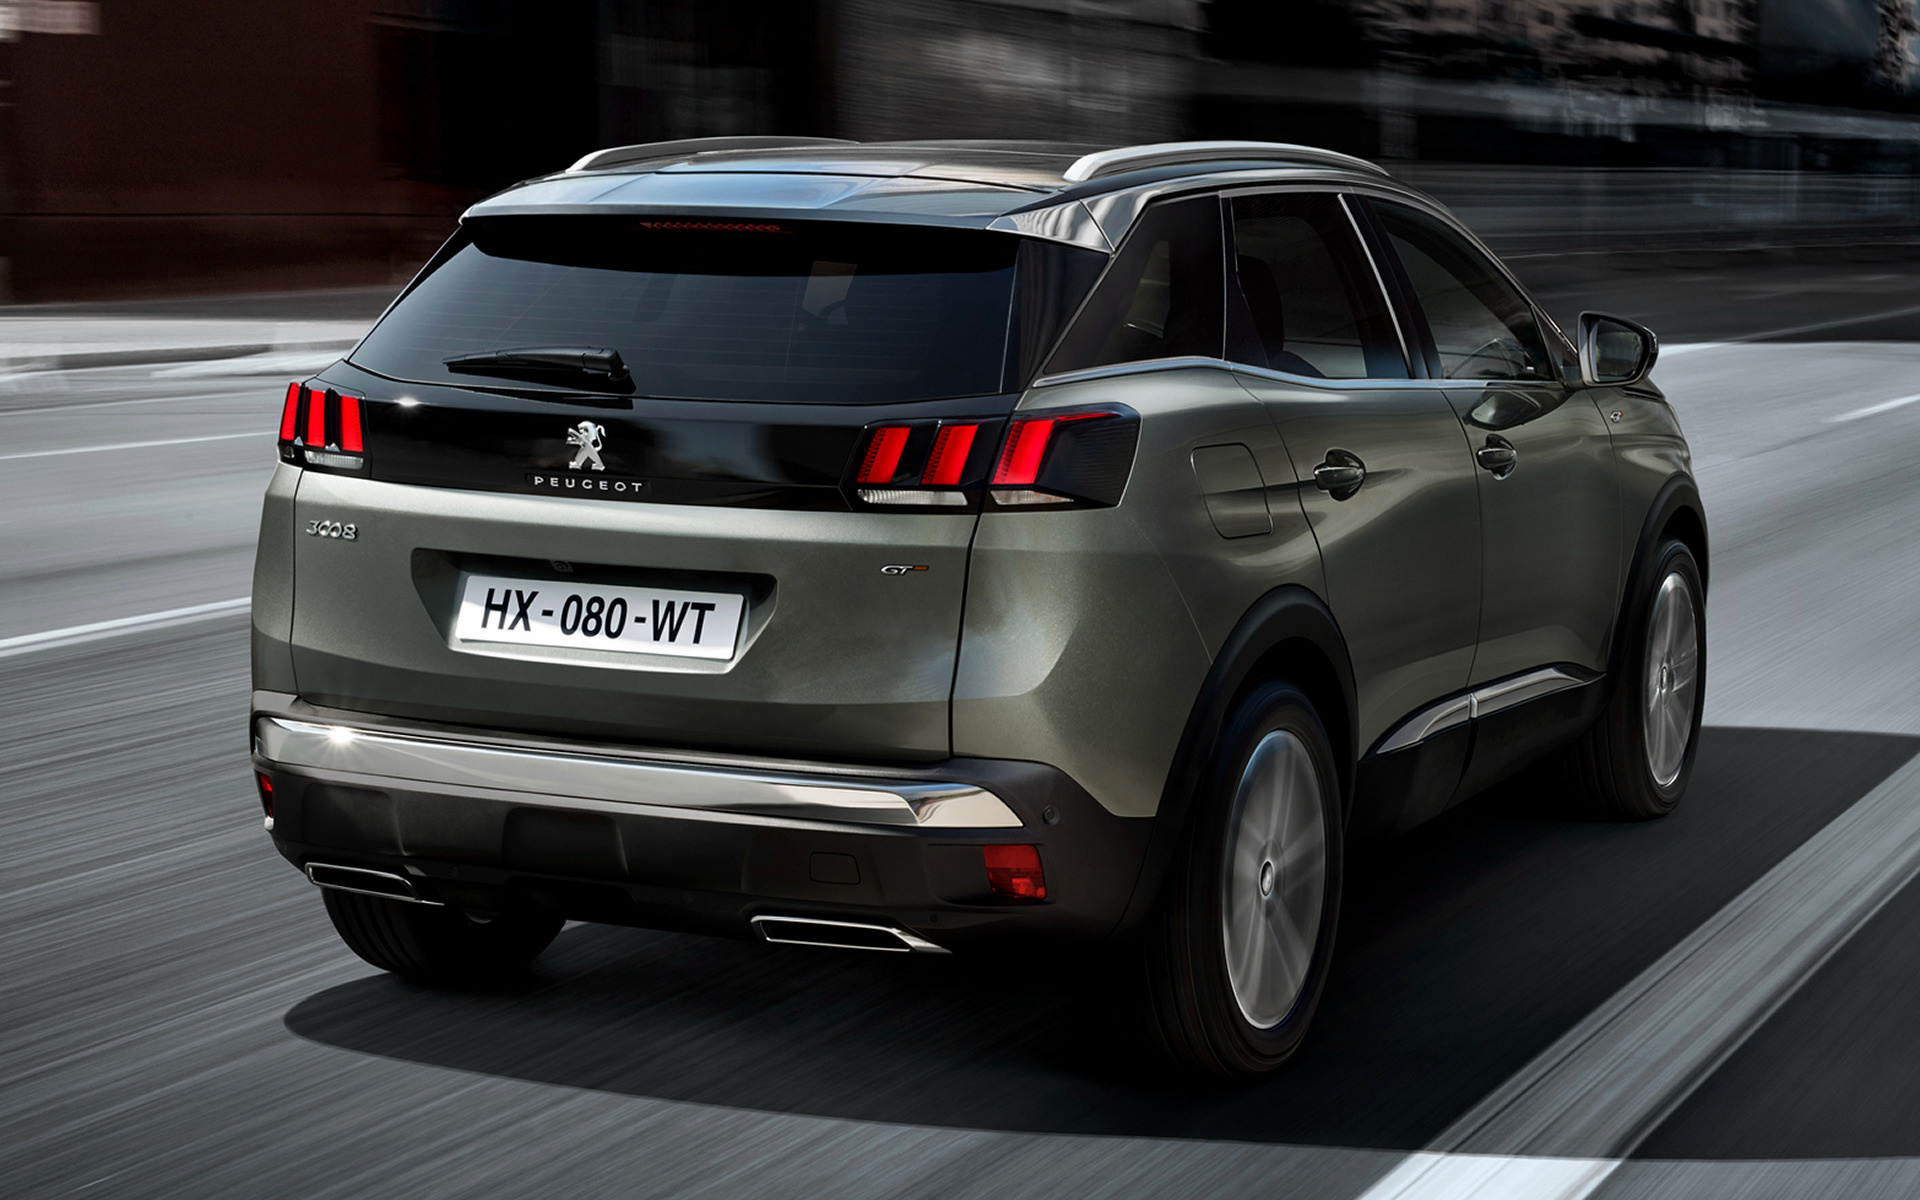 2016 Volkswagen Suv >> Peugeot 3008 GT (2016) Wallpapers and HD Images - Car Pixel